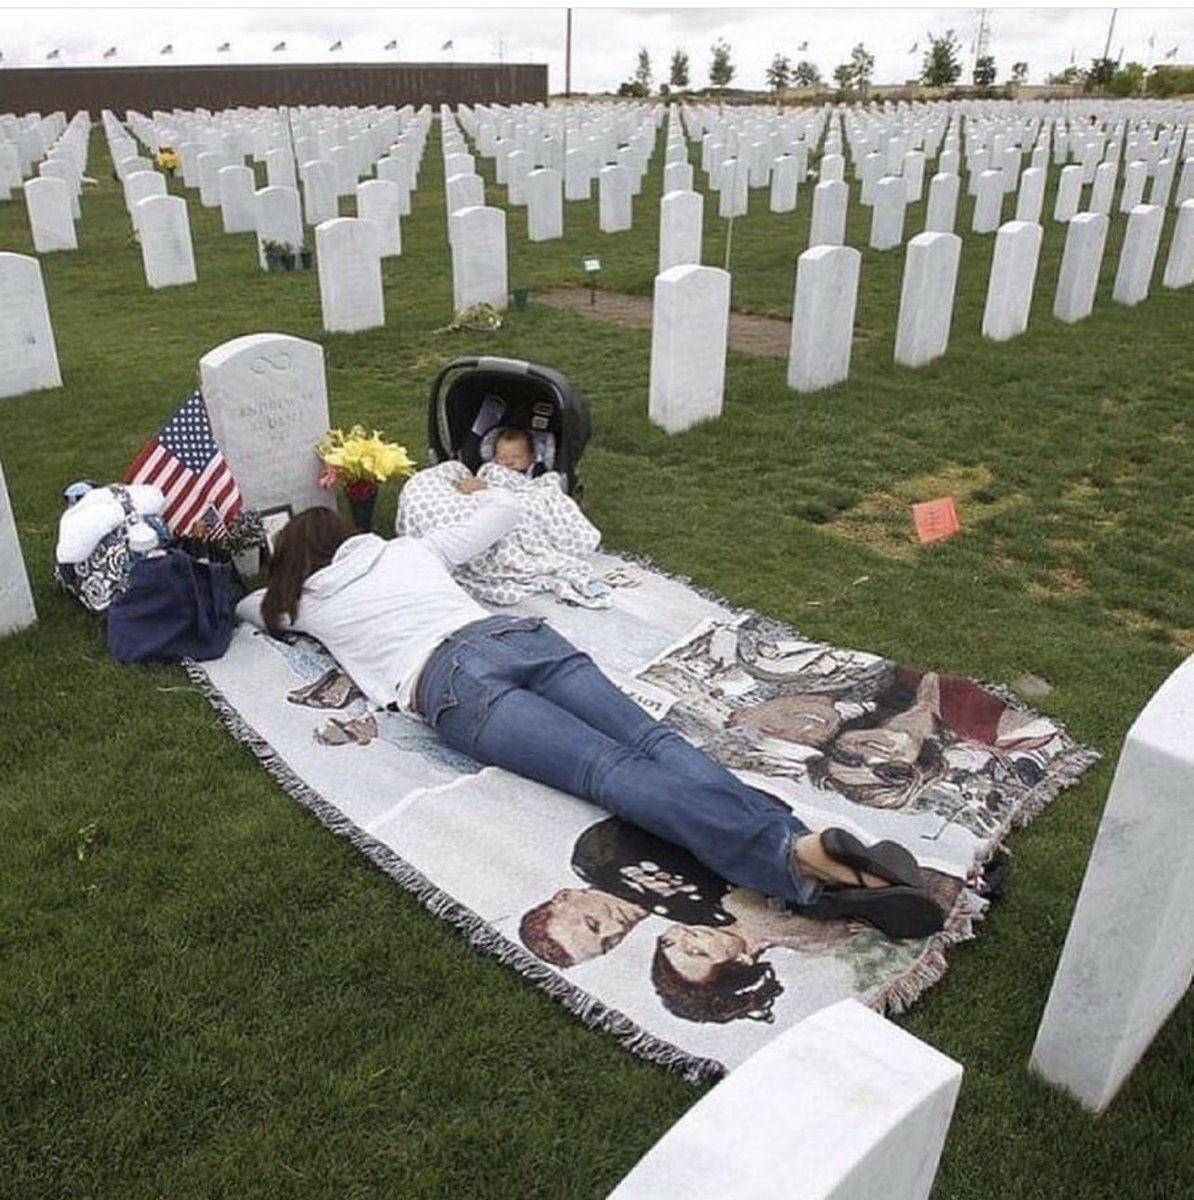 memorial day - honor & remember #2021 https://t.co/GRMwkVCb4a